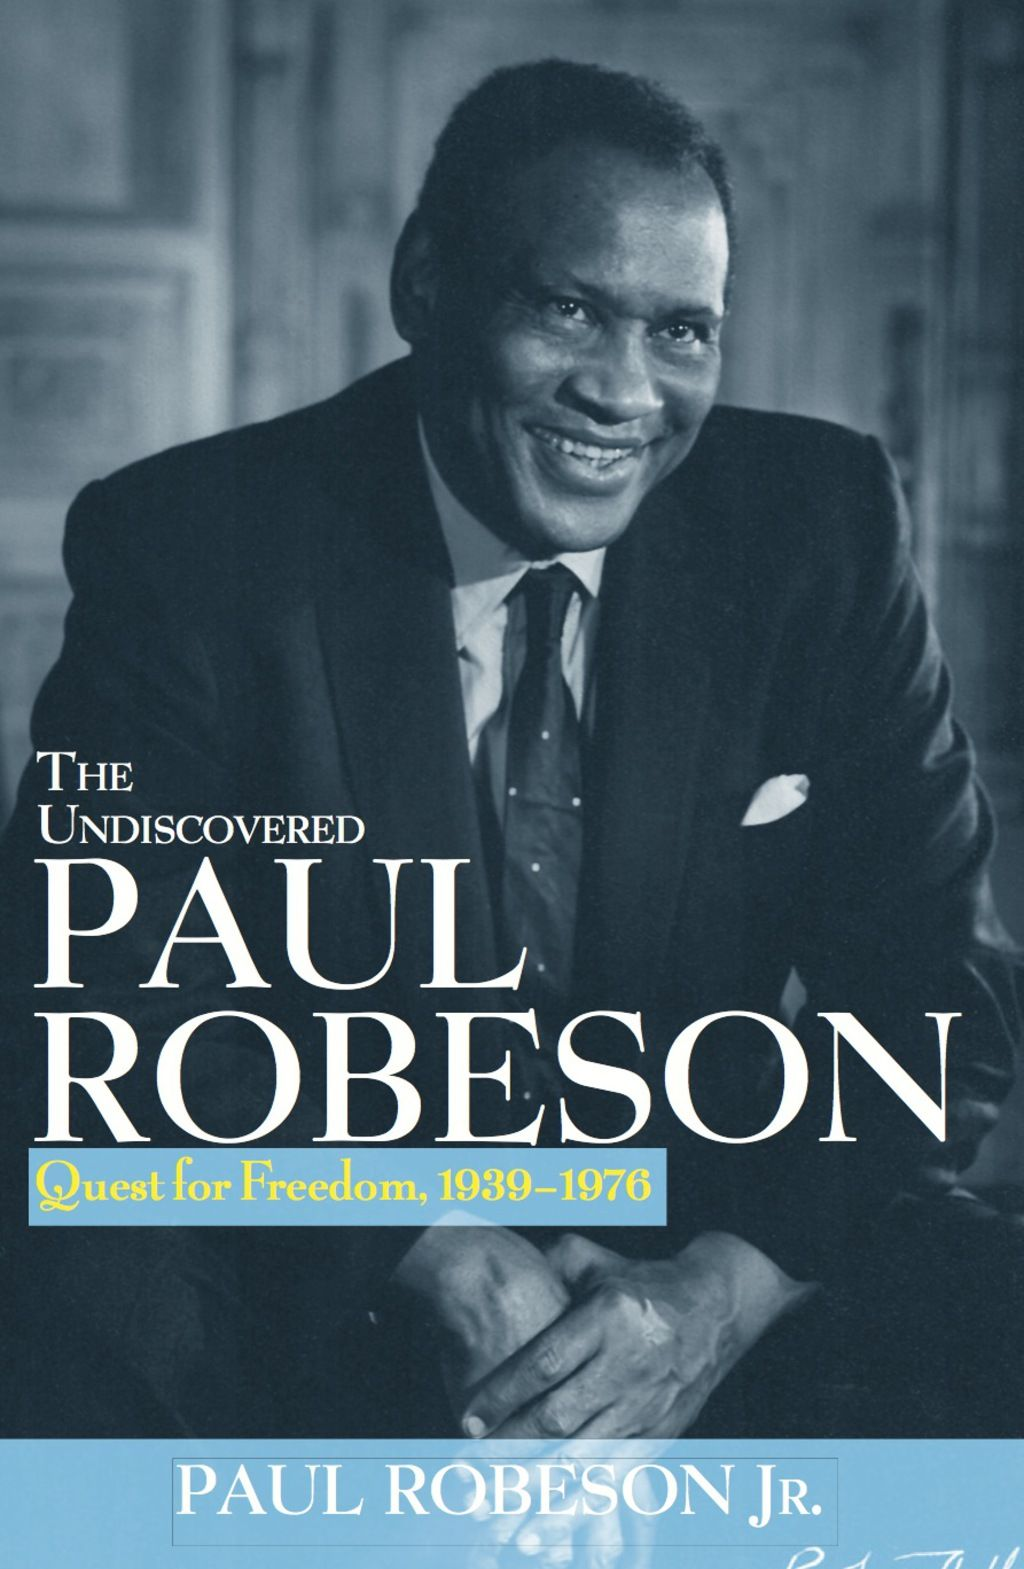 The Undiscovered Paul Robeson Ebook Black History Books Book Authors Performance Artist